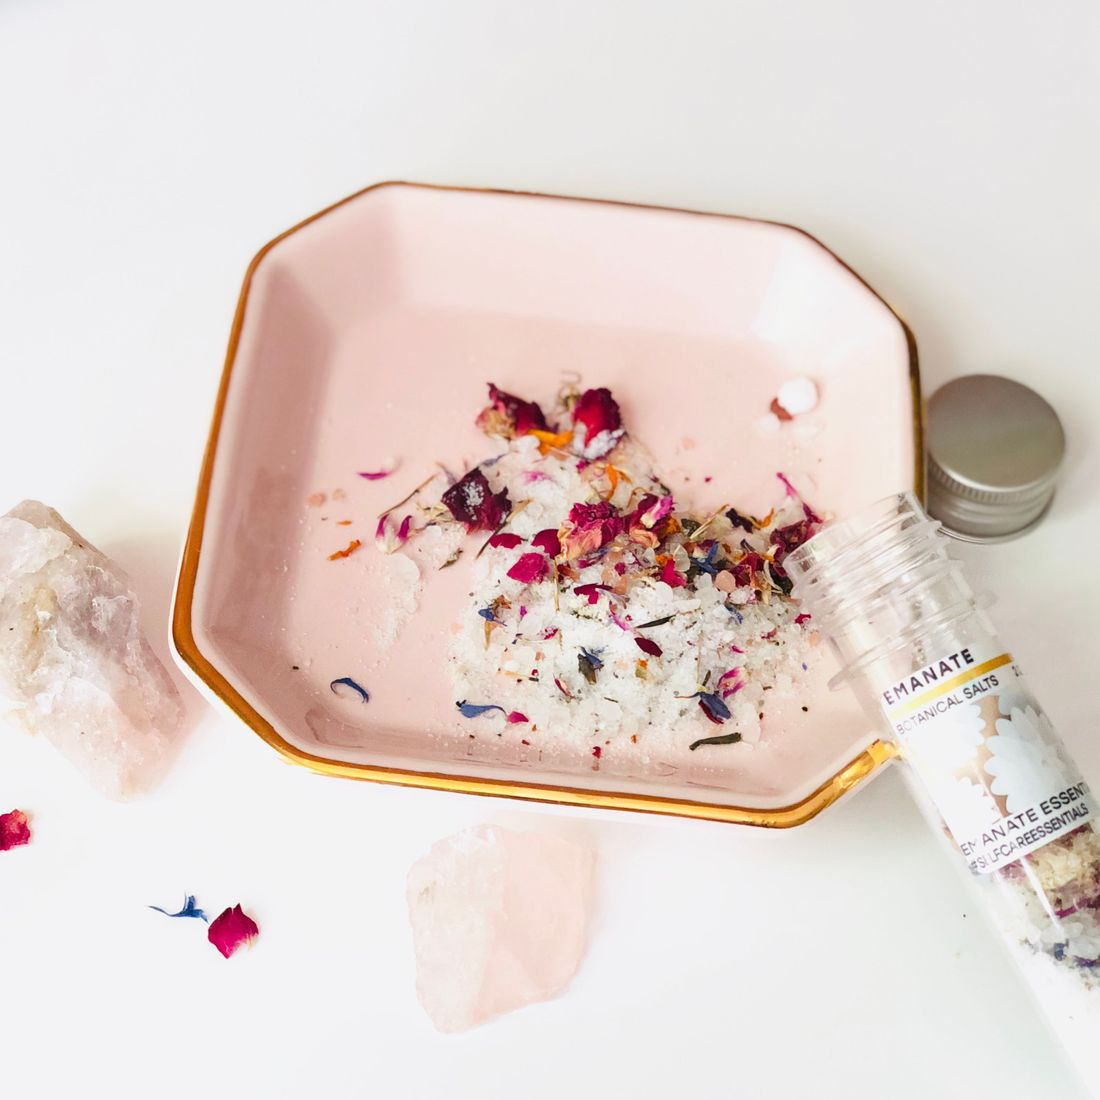 rosepost box, clean rose-infused beauty, bath salts, natural skincare, botanical skincare